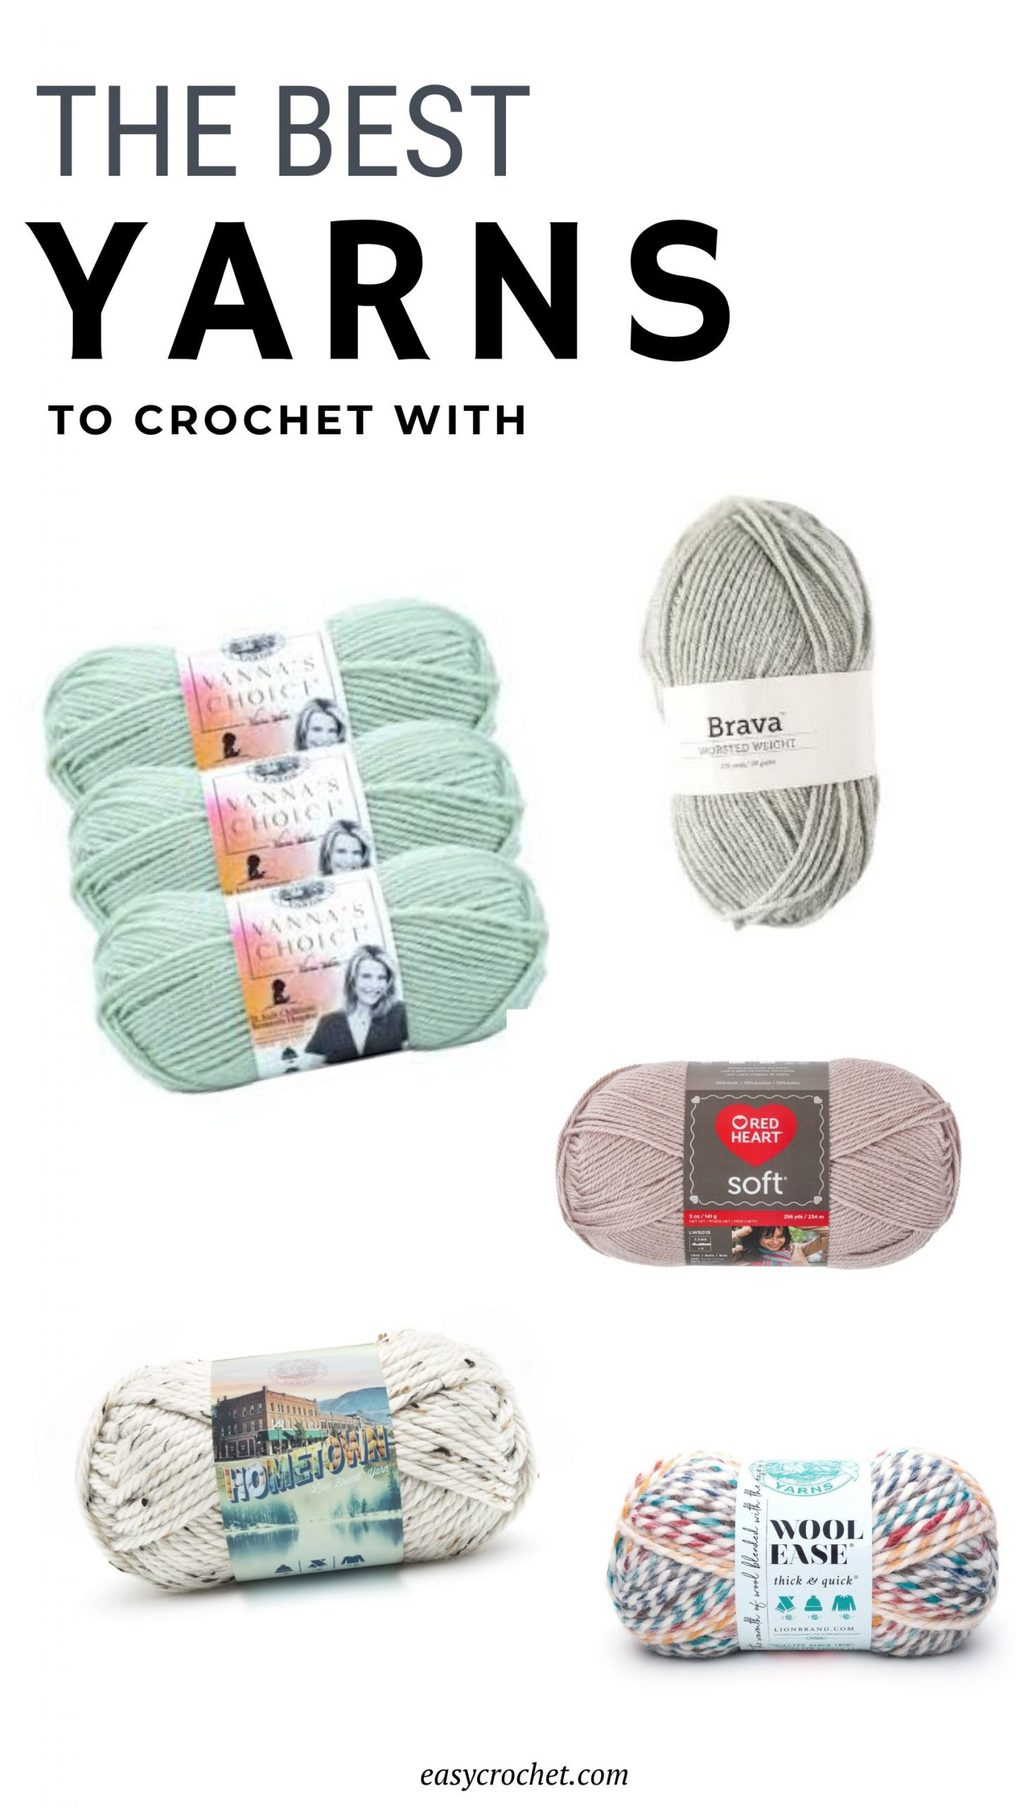 The best yarns to crochet with